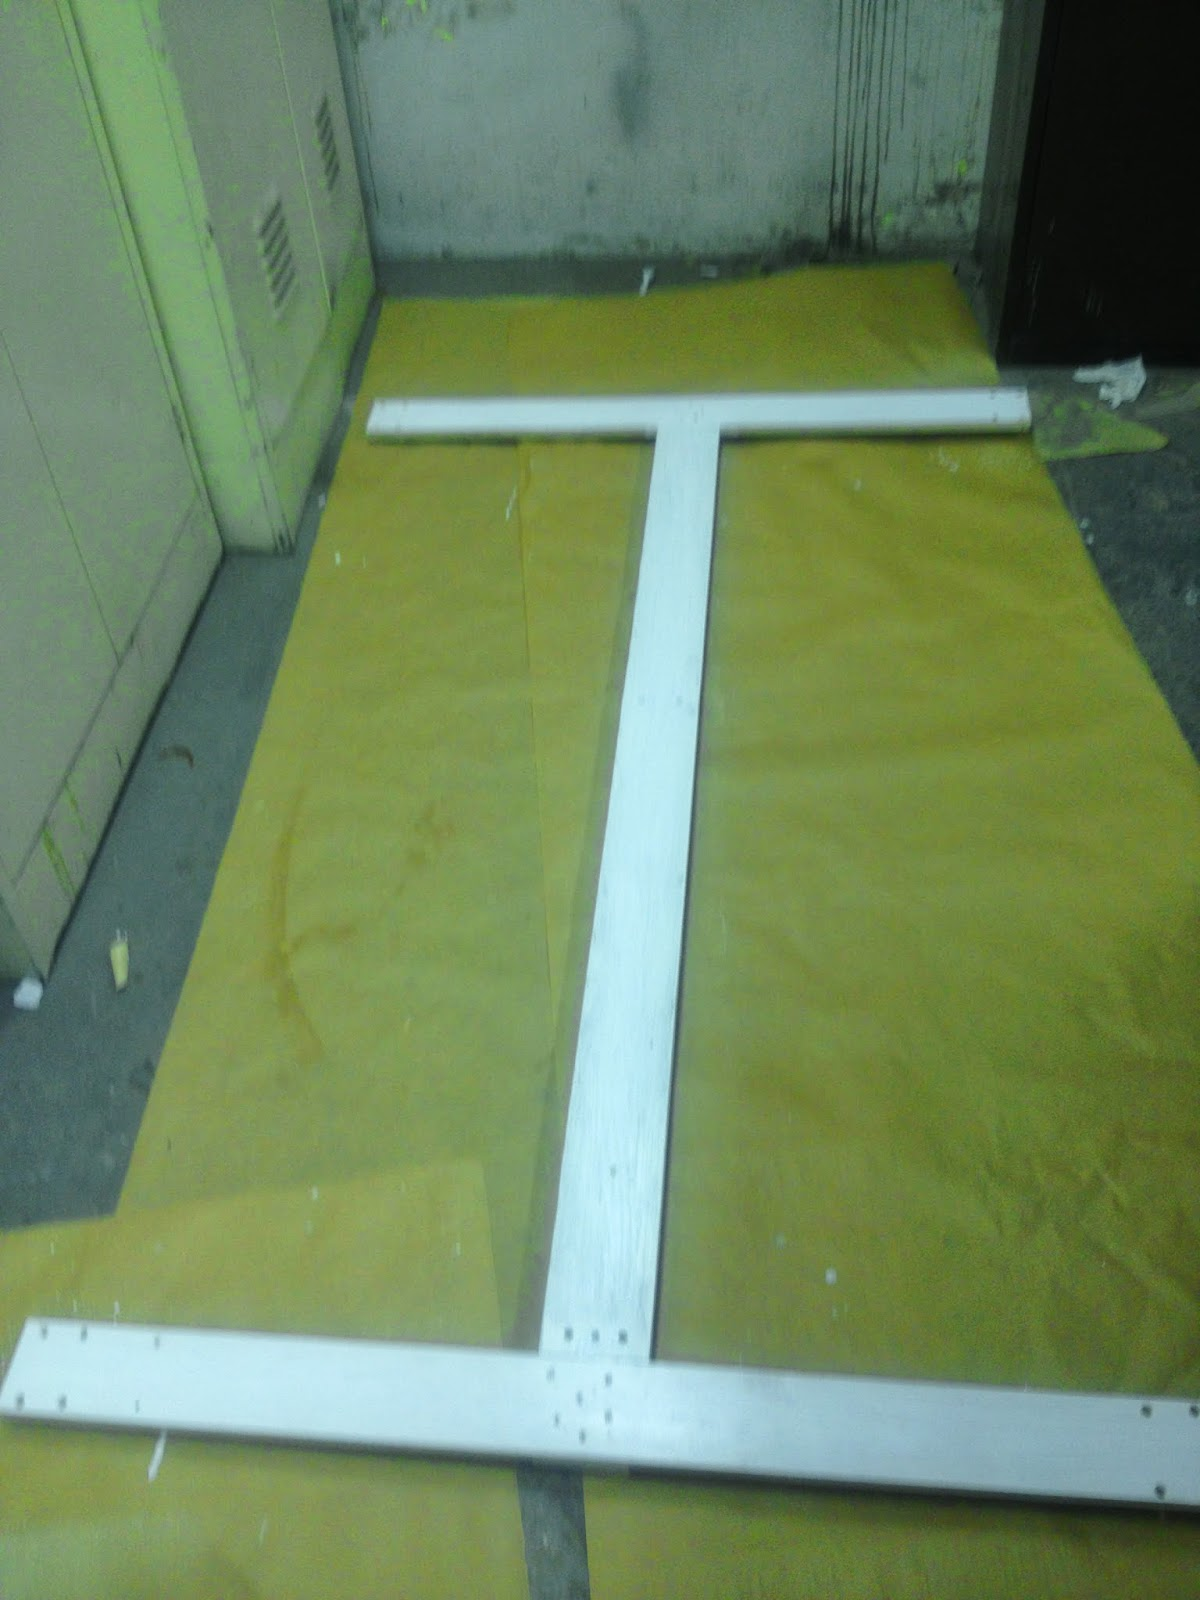 The three dolly pieces are laid out to dry on a plastic after having been painted white.